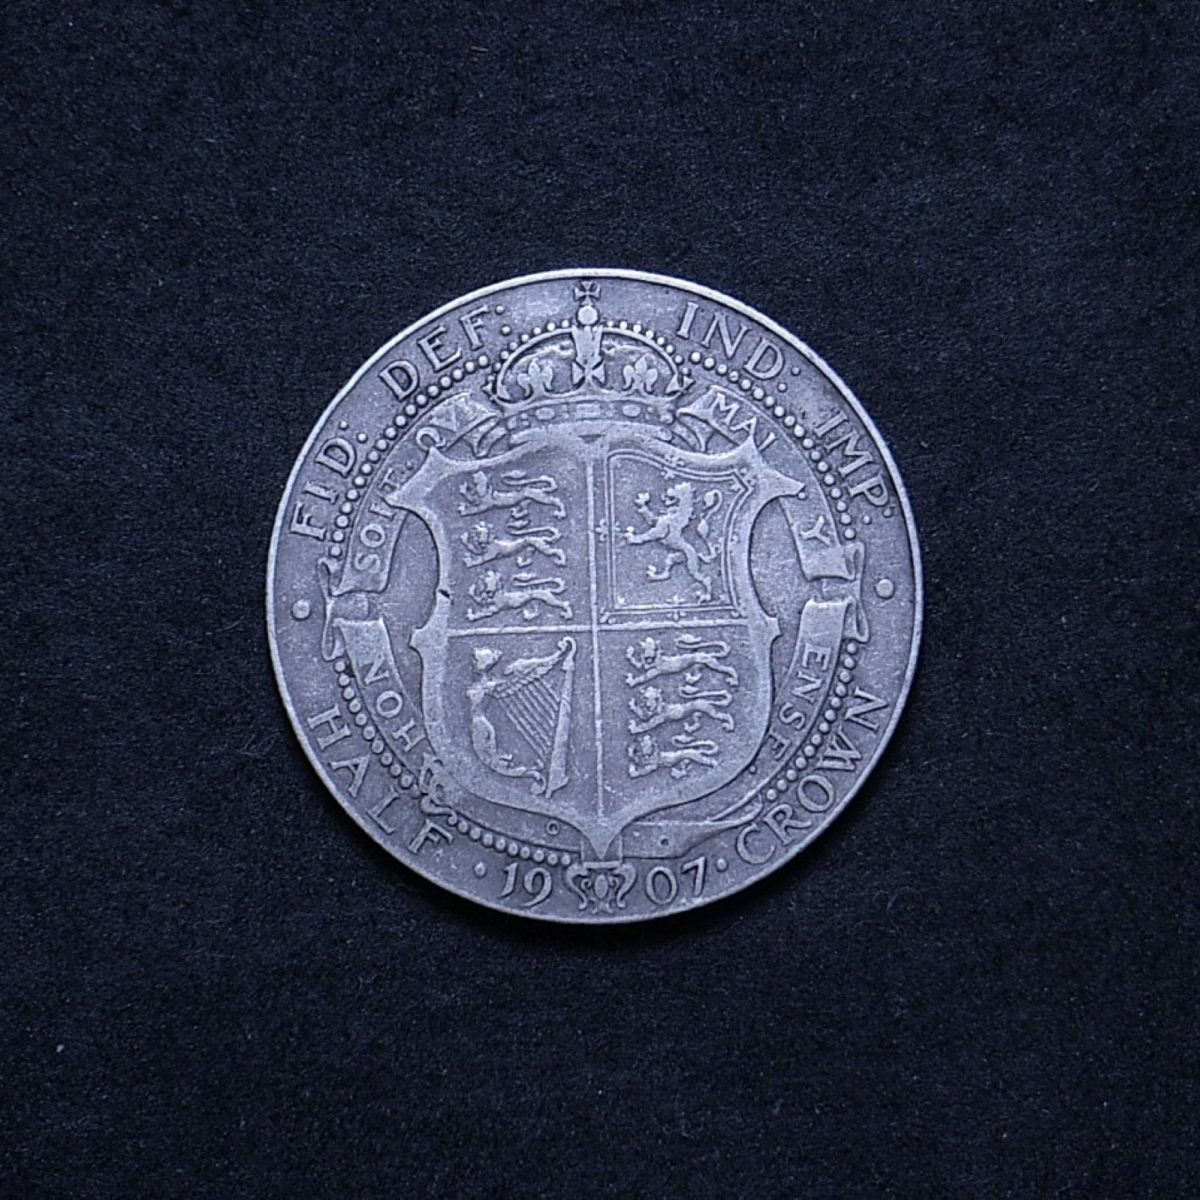 UK Half Crown 1907 reverse showing overall appearance